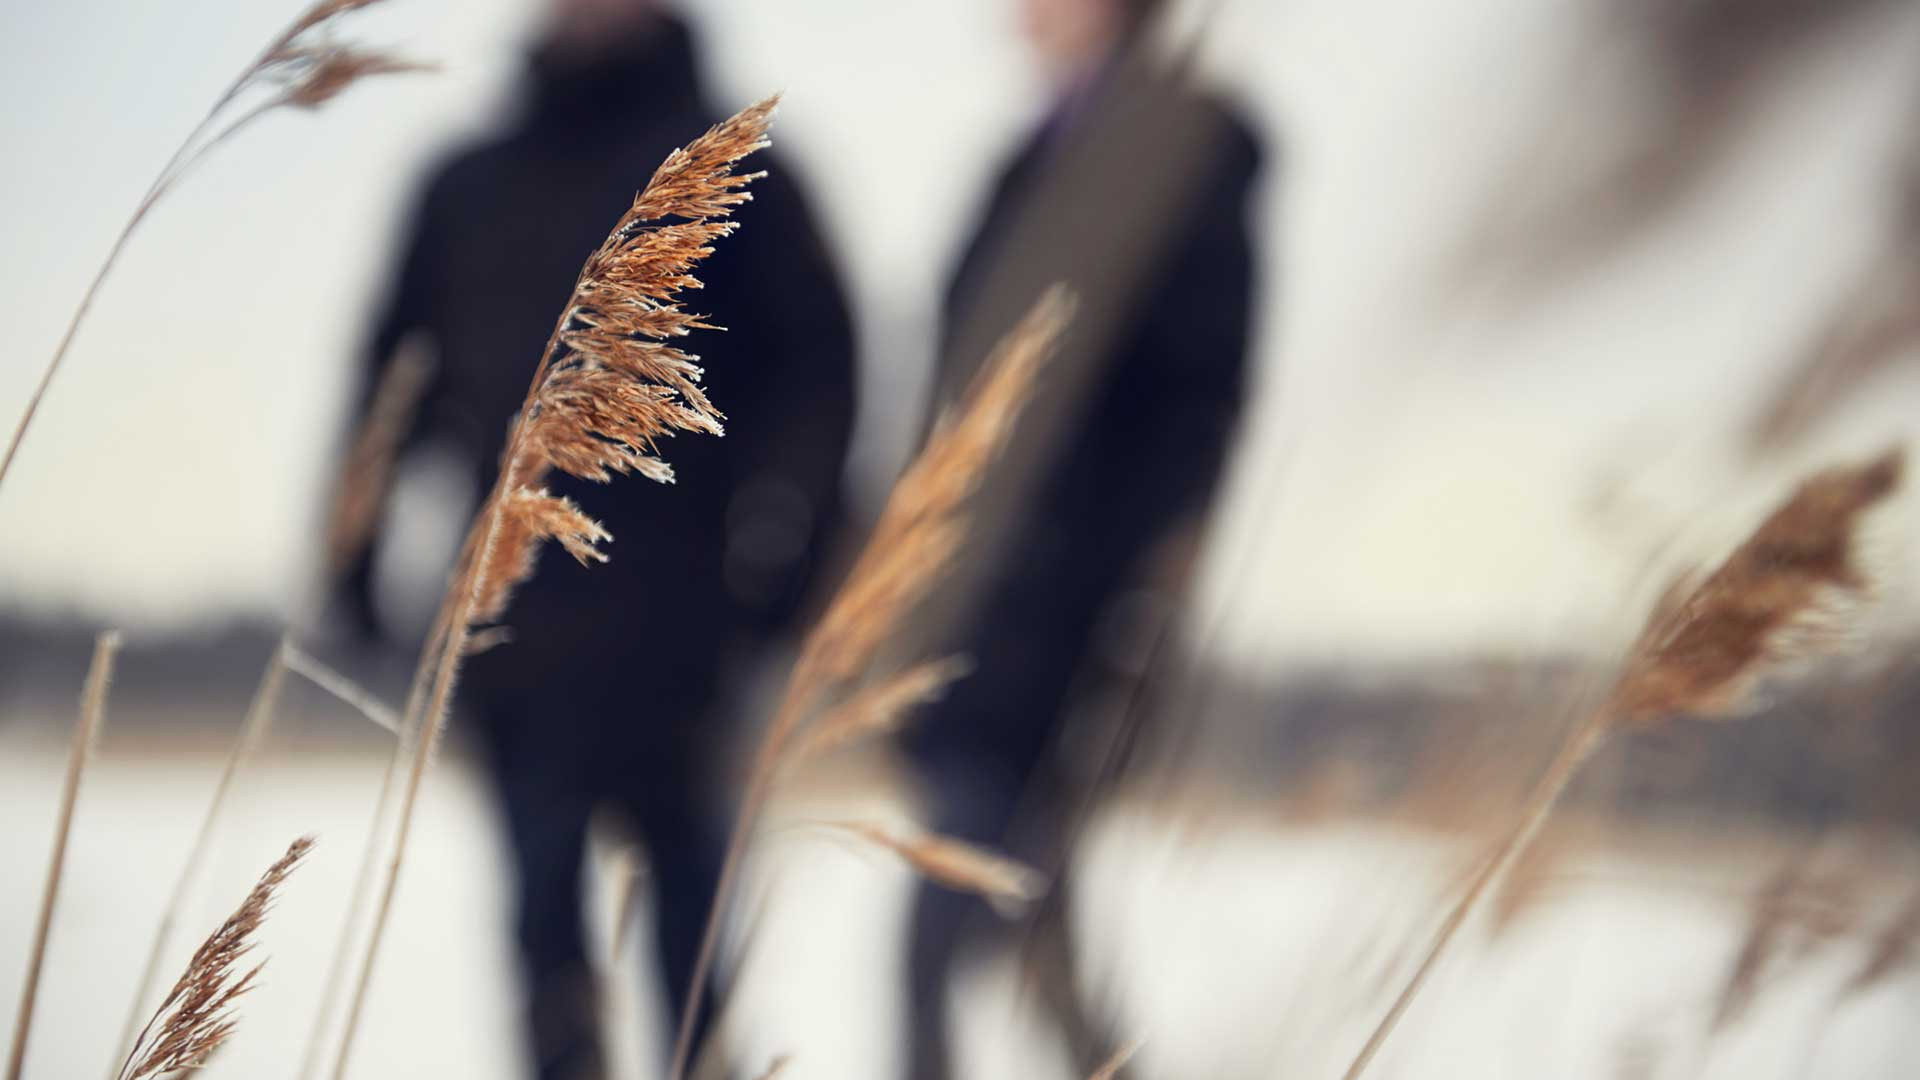 Close-up of frosty reeds close to a frozen lake with two people dressed in black in the background.